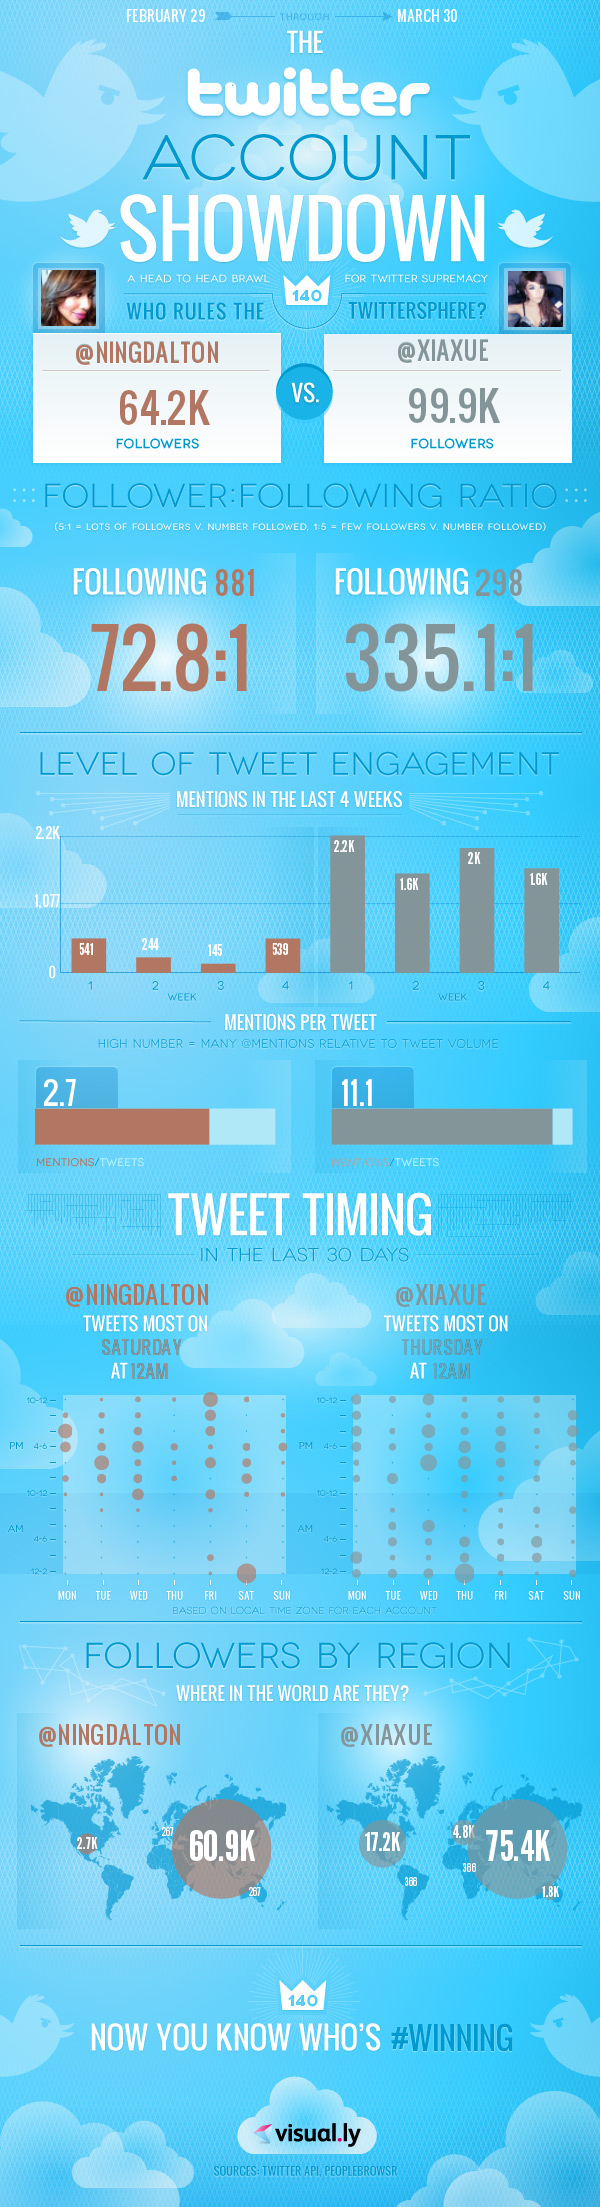 Clash of the Tweet Divas – @NingDalton versus @Xiaxue